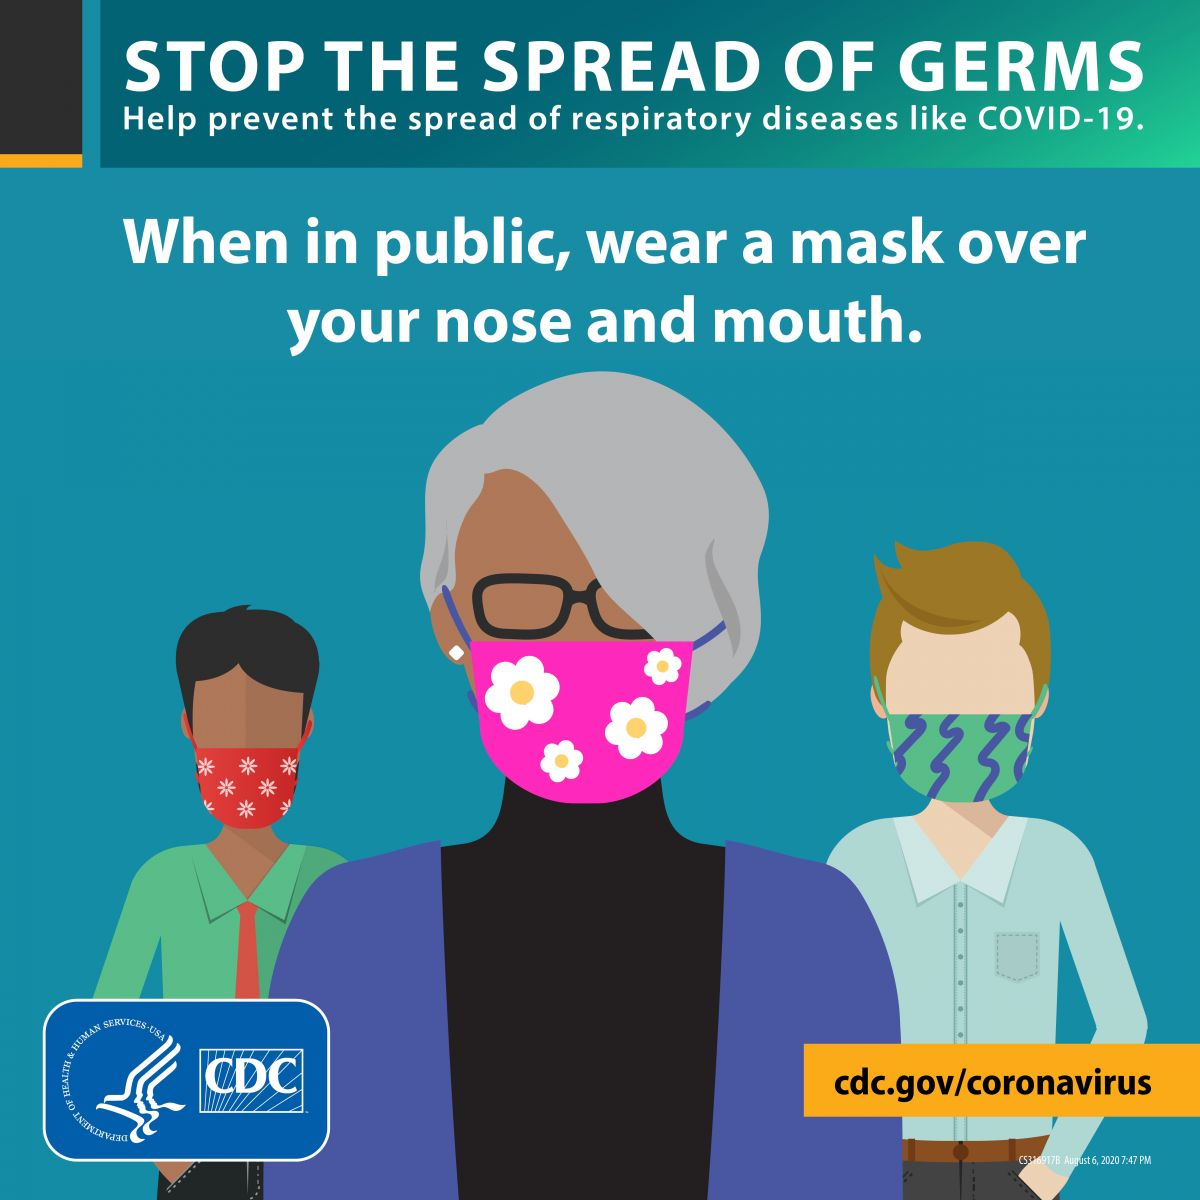 Wear a mask for everyone's safety